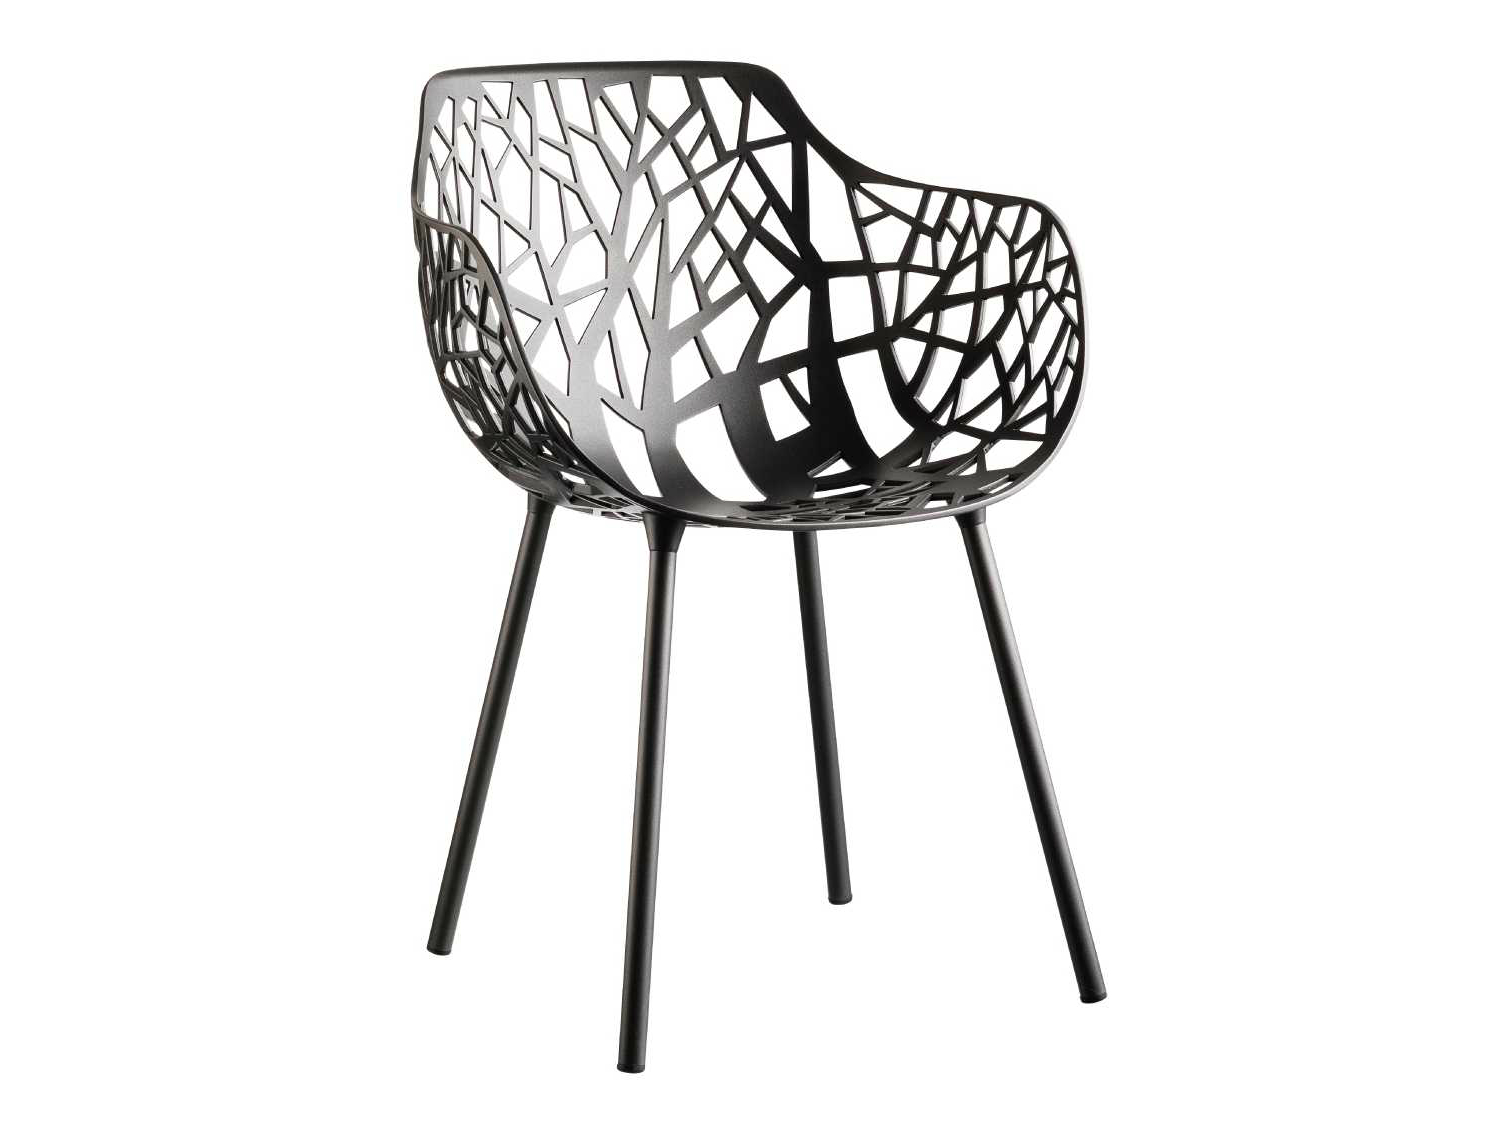 Fast-forest-armchair-stoel-metallic-grey-2-def